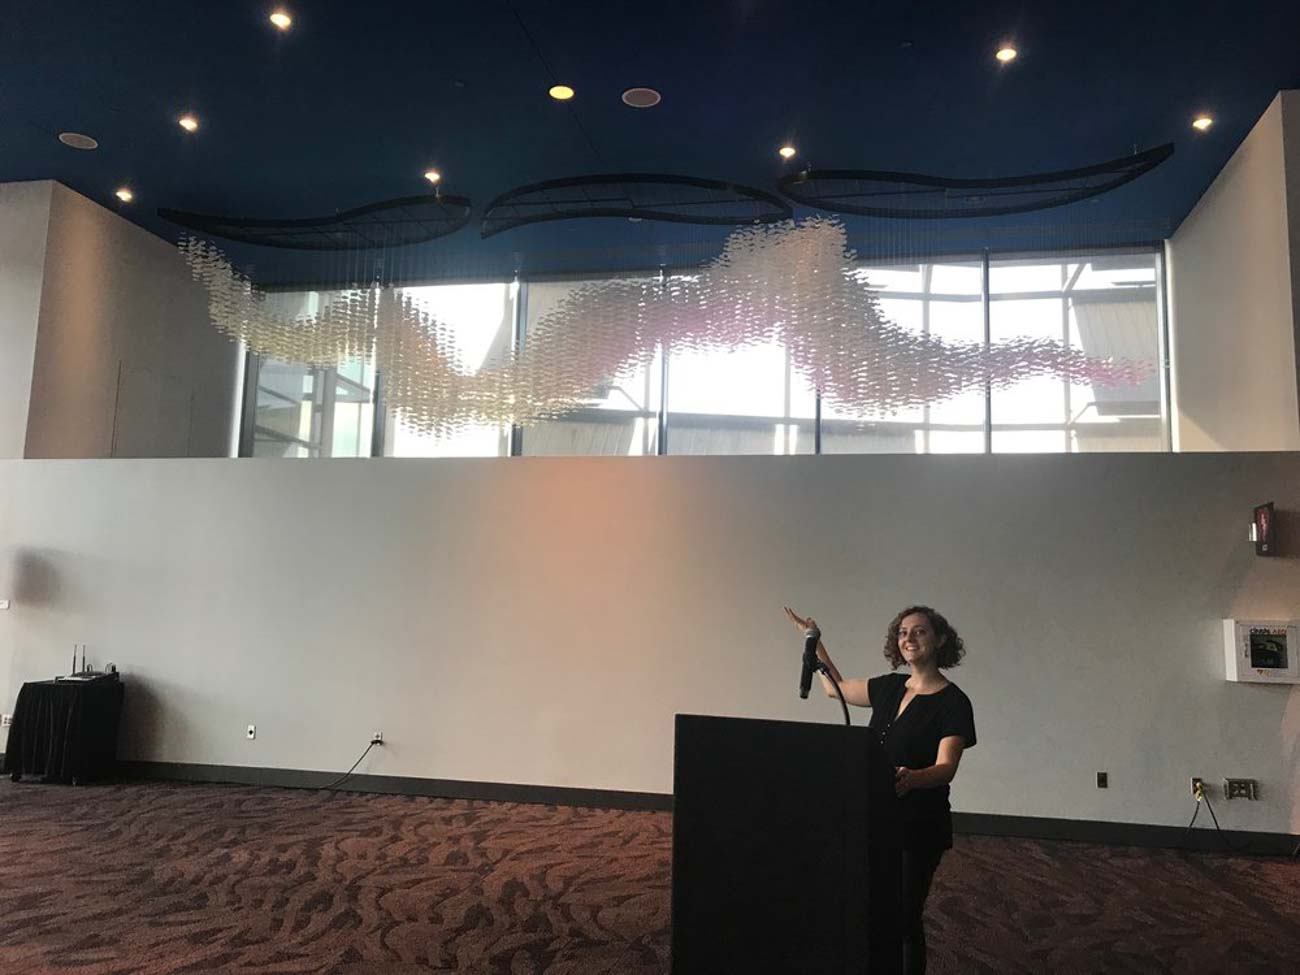 "Pictured: Jessica Wolf / Her piece, ""Confluence"", was designed to be displayed in the Duke Energy Convention Center through a partnership they have with ArtWorks where they curate local art installations to showcase. Confluence is located in the window alcove by the Grand Ballroom, which sits behind the ""A"" in the large Cincinnati sign seen on the west side of the building from outside. She worked with four ArtWorks apprentices who helped cut, fold, and string around 11,000 paper circles to assemble the sculpture. It took over eight weeks to complete. / Image courtesy of Paper Acorn // Published: 6.18.20"